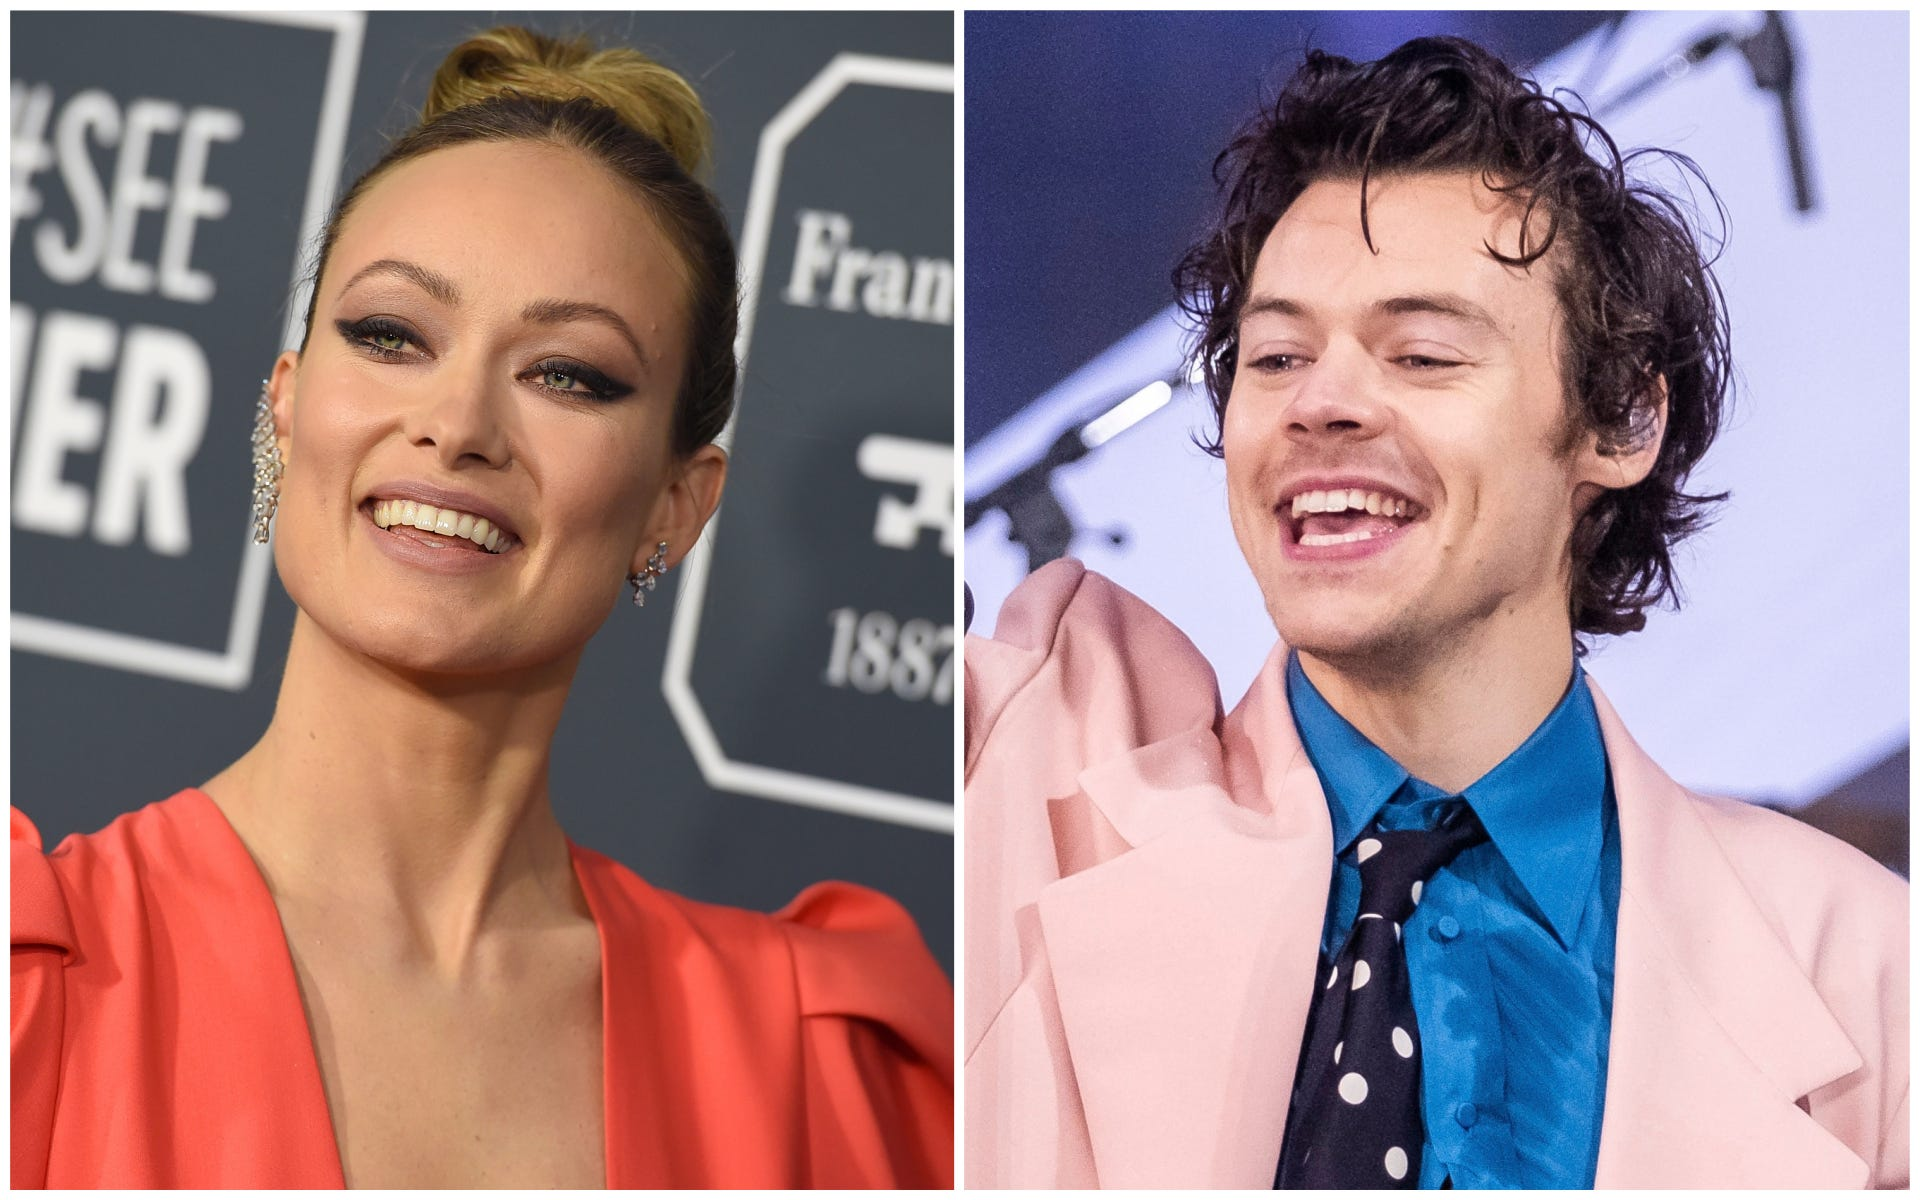 Olivia Wilde praises Harry Styles   humility and grace  weeks after romance rumors surface